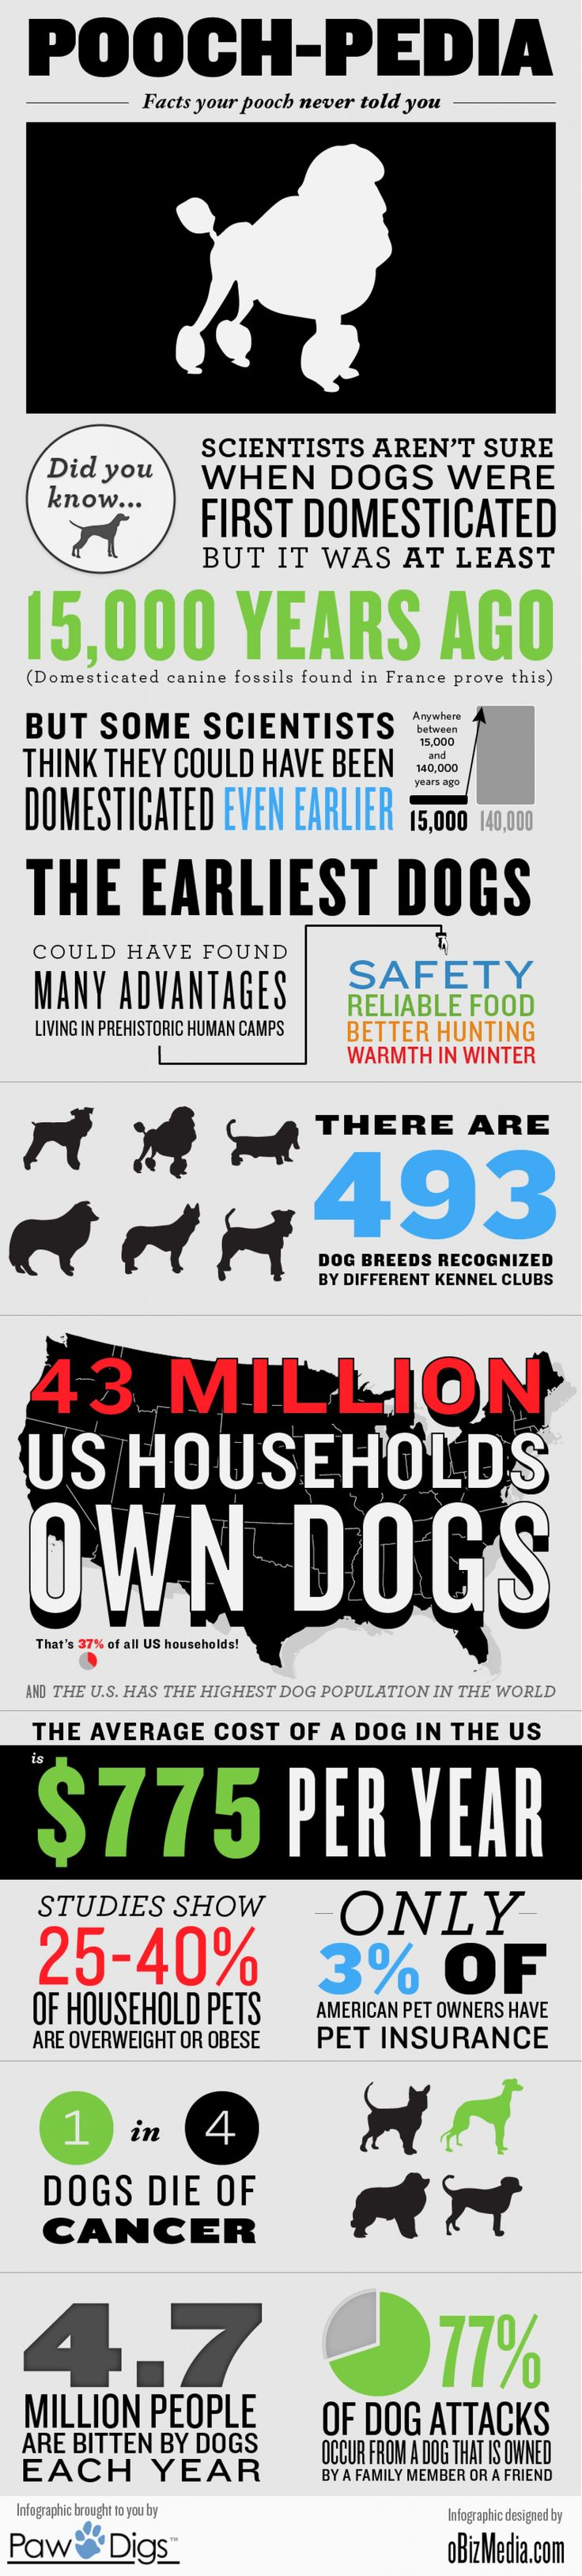 Pooch-pedia: Facts Your Pooch Never Told You #dogs